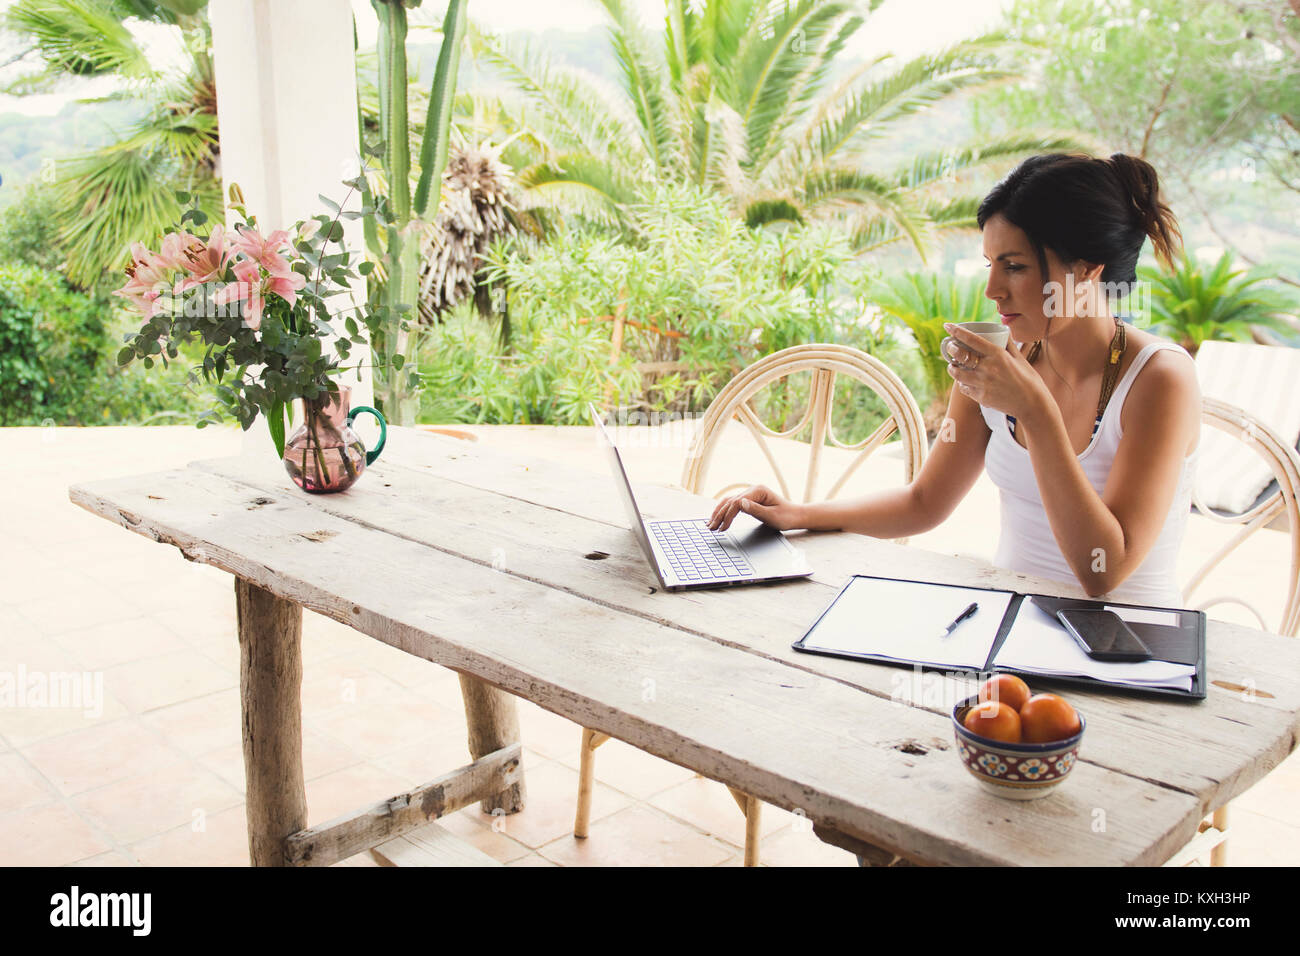 Beautiful woman teleworking outside in tropical location. - Stock Image